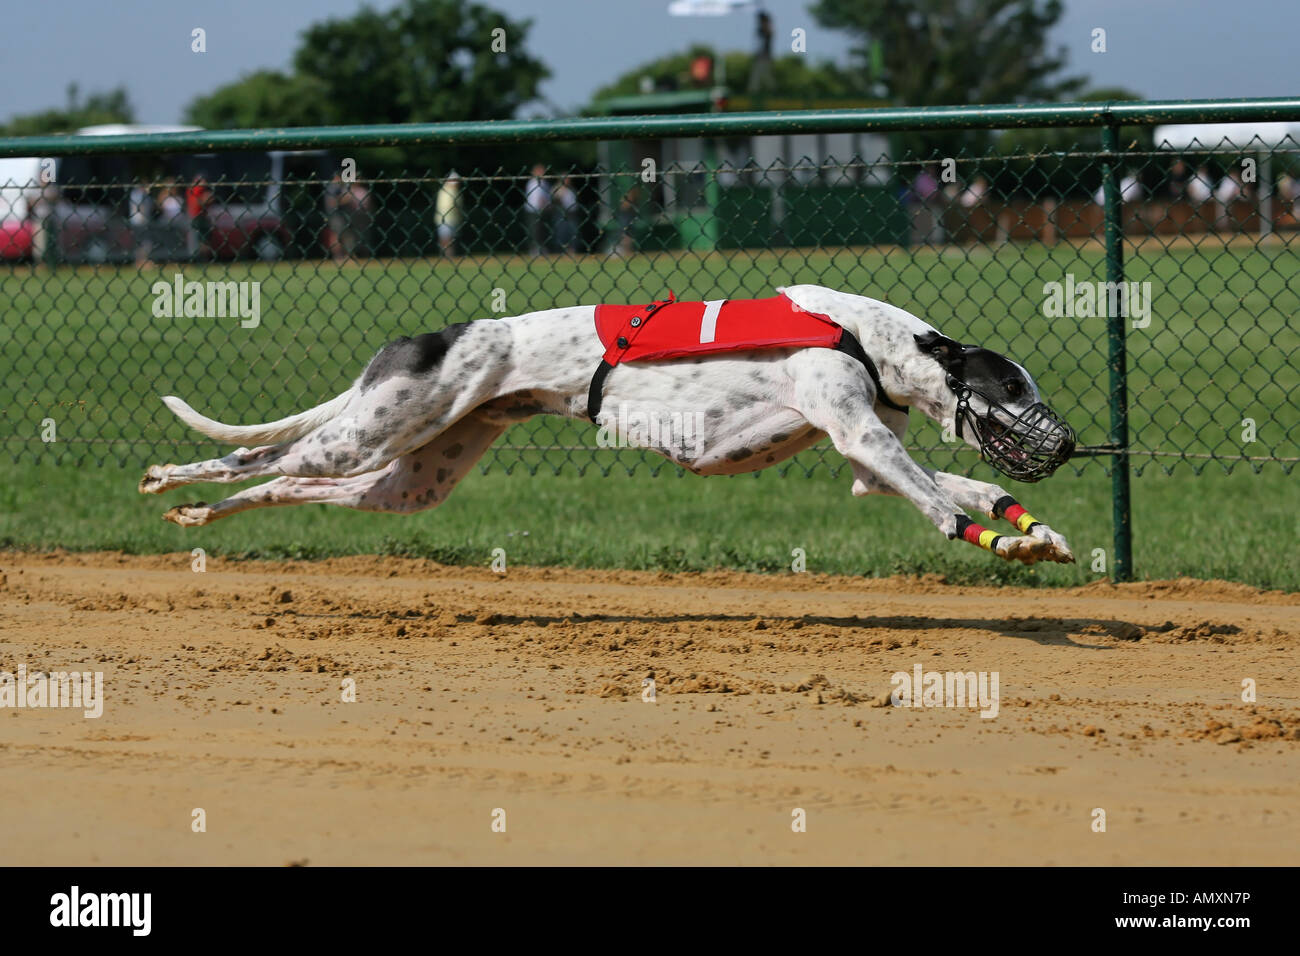 8bf92defaffd5 Whippet dog running on race track Stock Photo  15354729 - Alamy